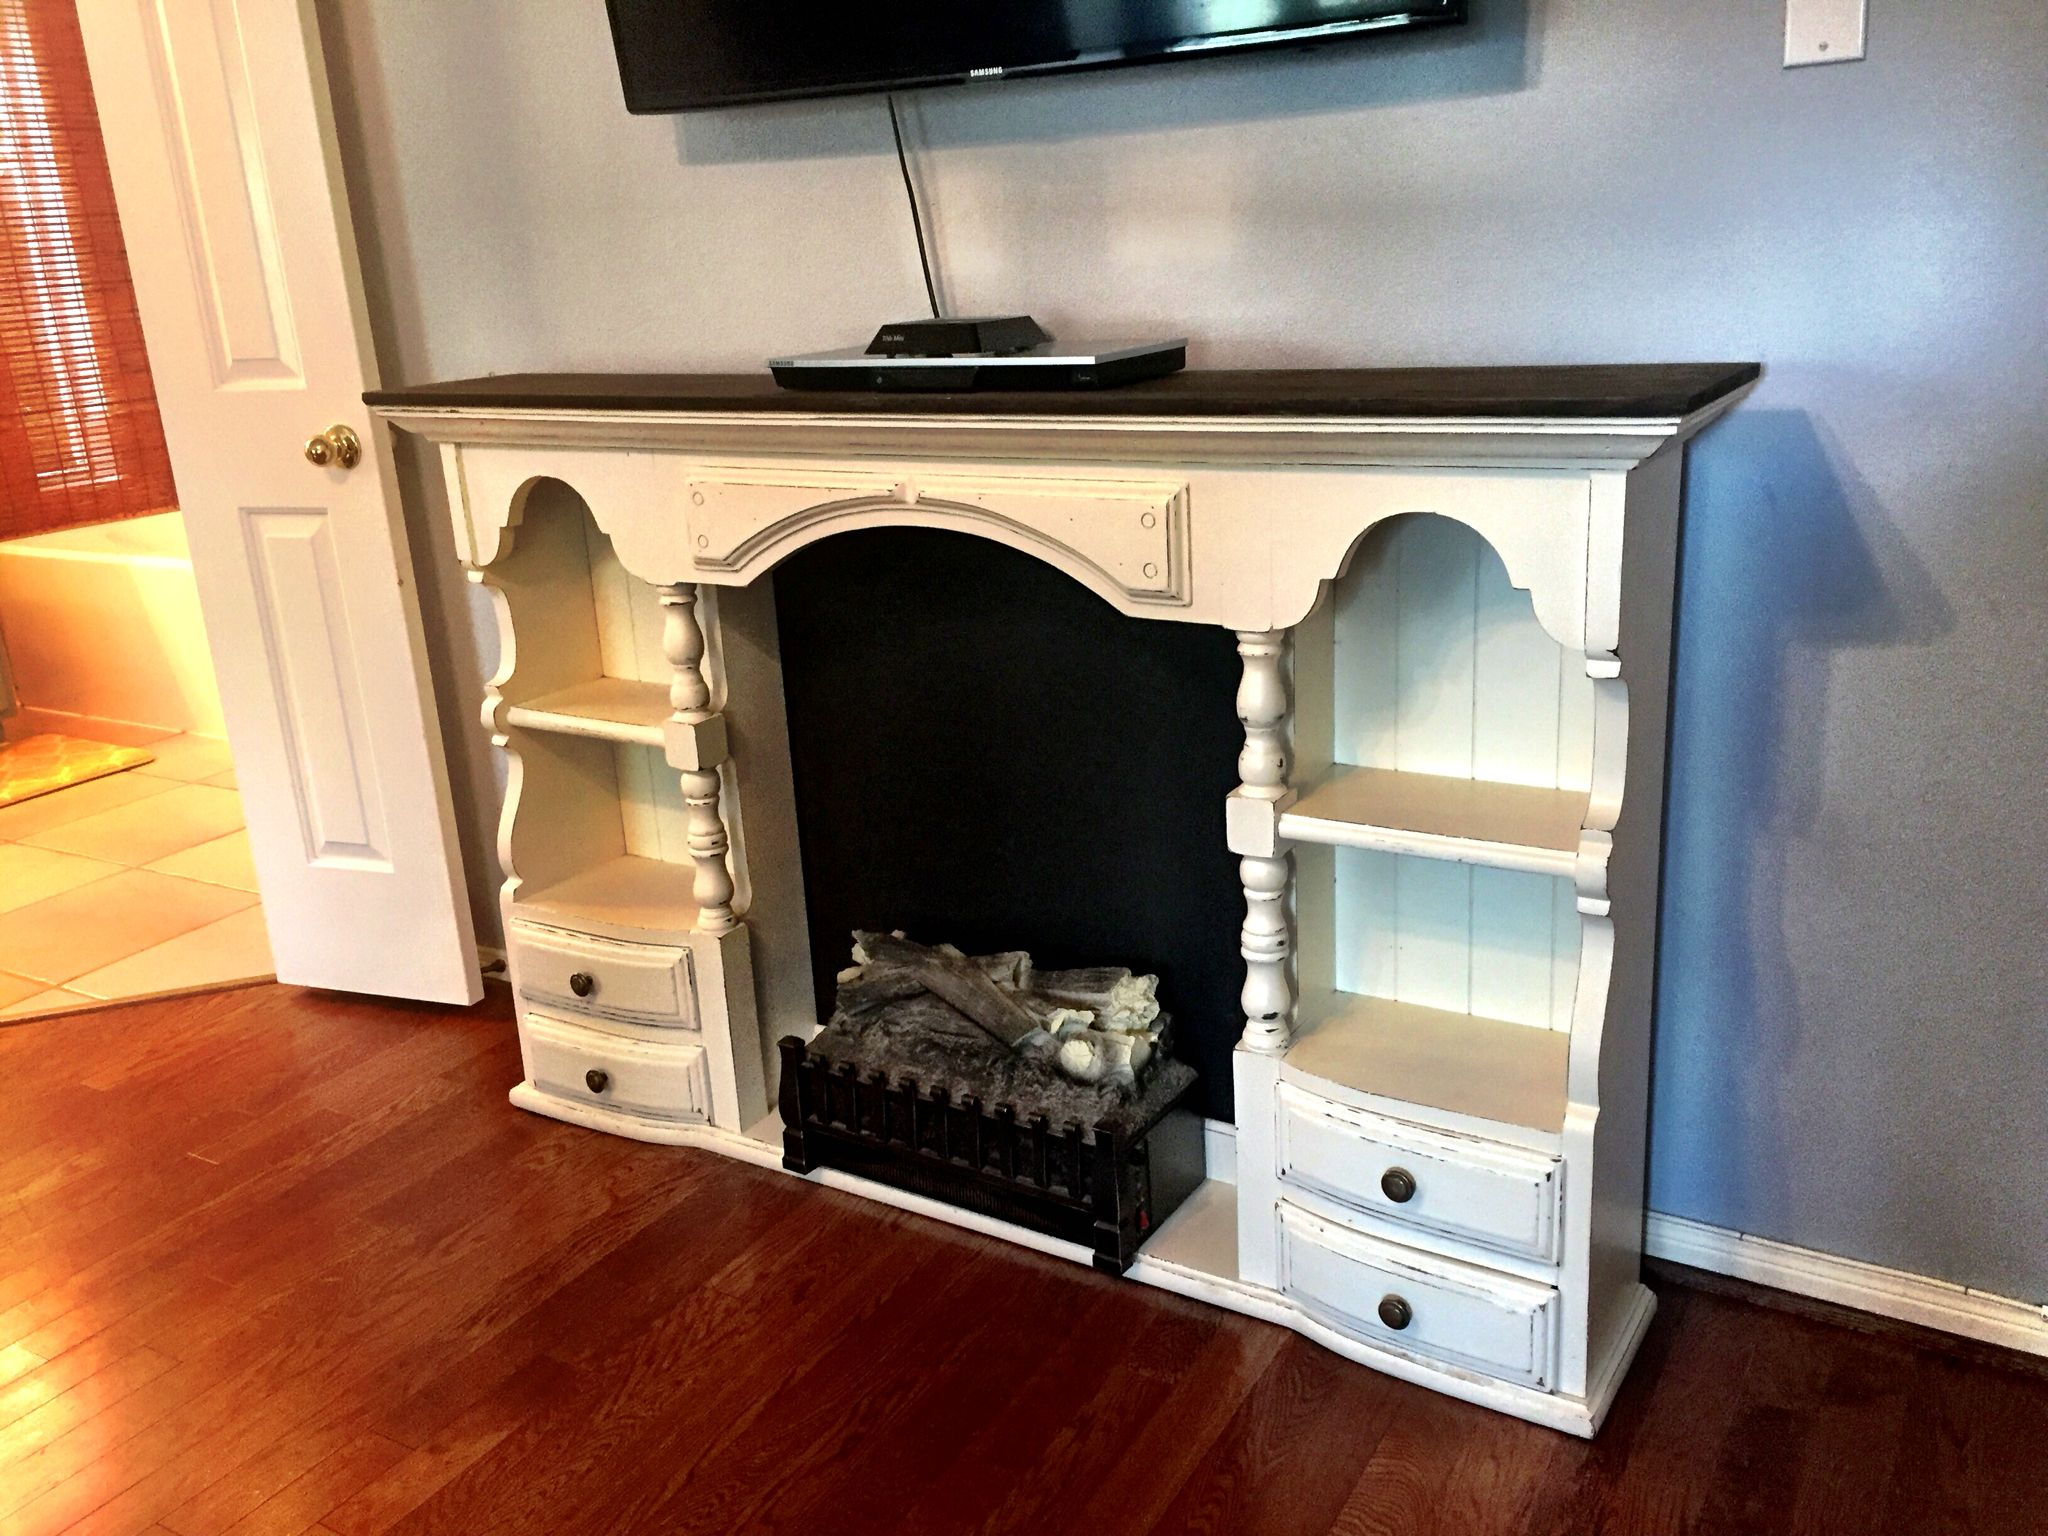 Faux Fireplace Insert Turn A Dated Mirrored Dresser Top Into A Faux Fireplace On The